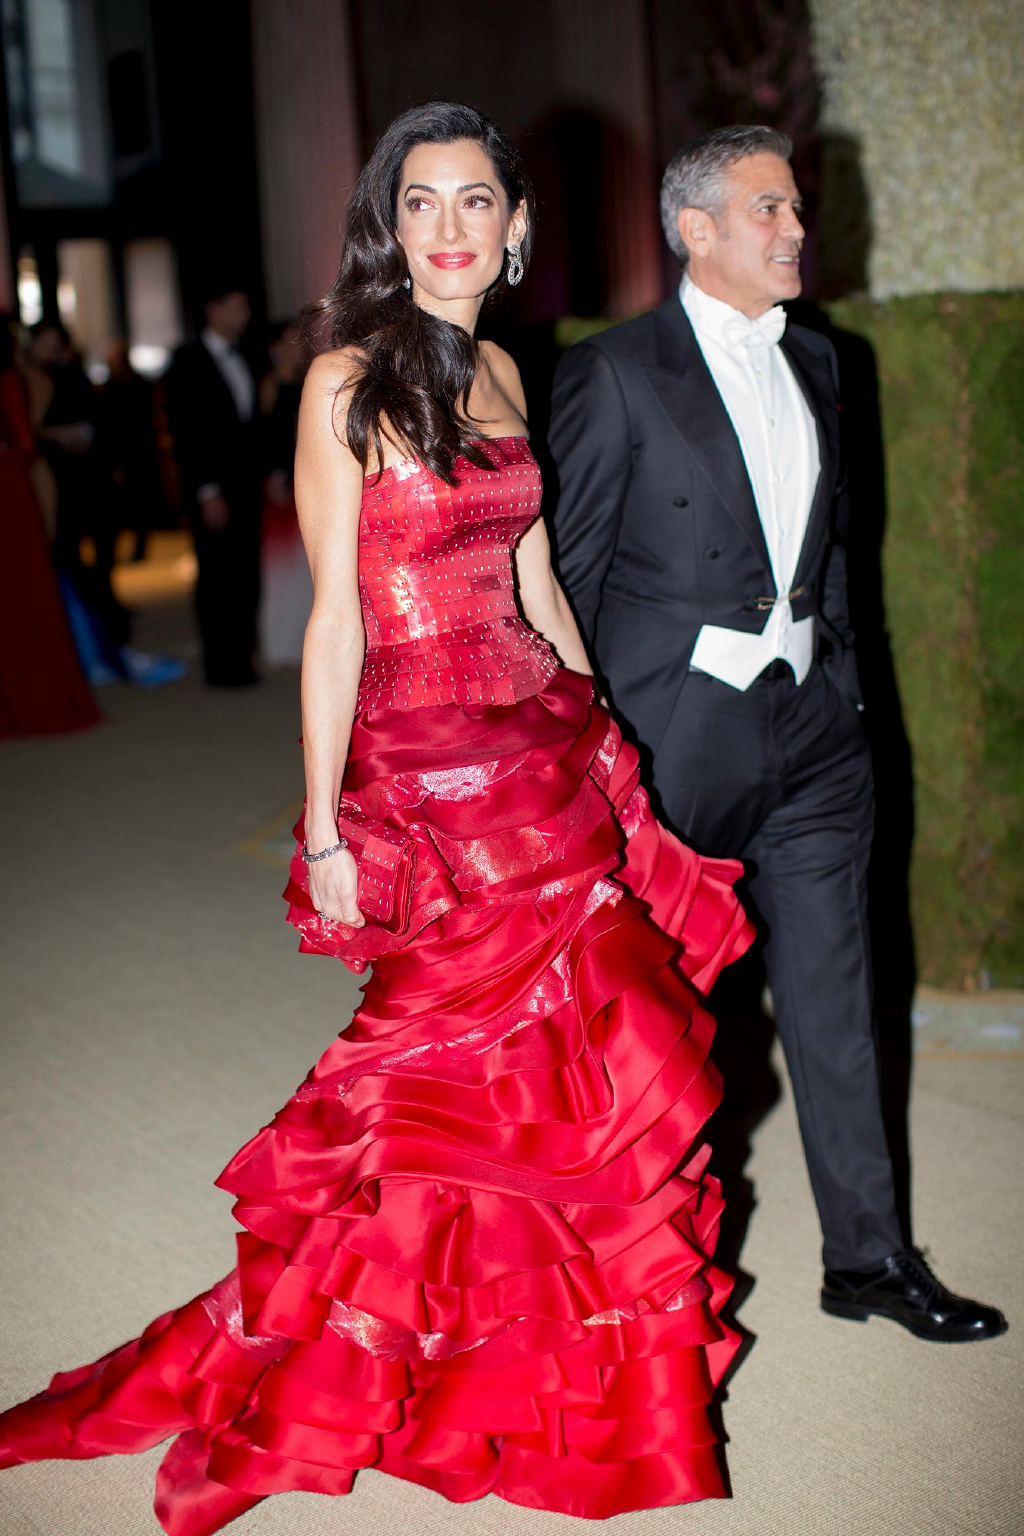 George Clooney at the Met Gala 4th May 2015 - Page 3 693f7a02gw1eruc9hthsqj21111jkh55